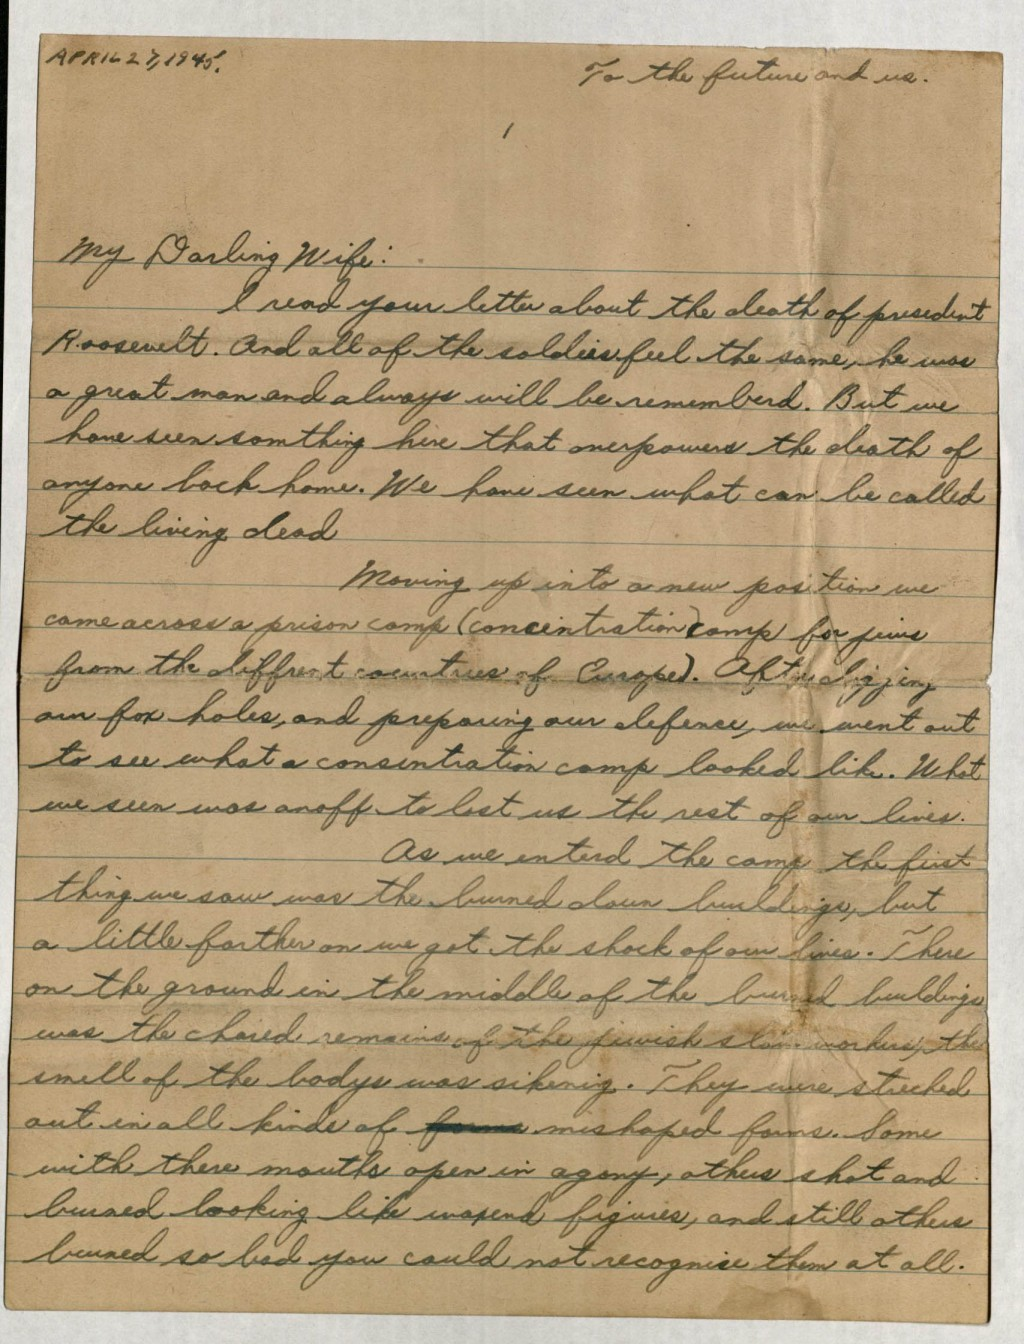 """<p>Aaron A. Eiferman, a member of the <a href=""""/narrative/8066/en"""">12th Armored Division</a>, wrote this letter to his wife in the United States. Writing """"We have seen what can be called the living dead,"""" he describes his experiences as the 12th overran a Dachau subcamp in the Landsberg area on April 27, 1945.</p>"""